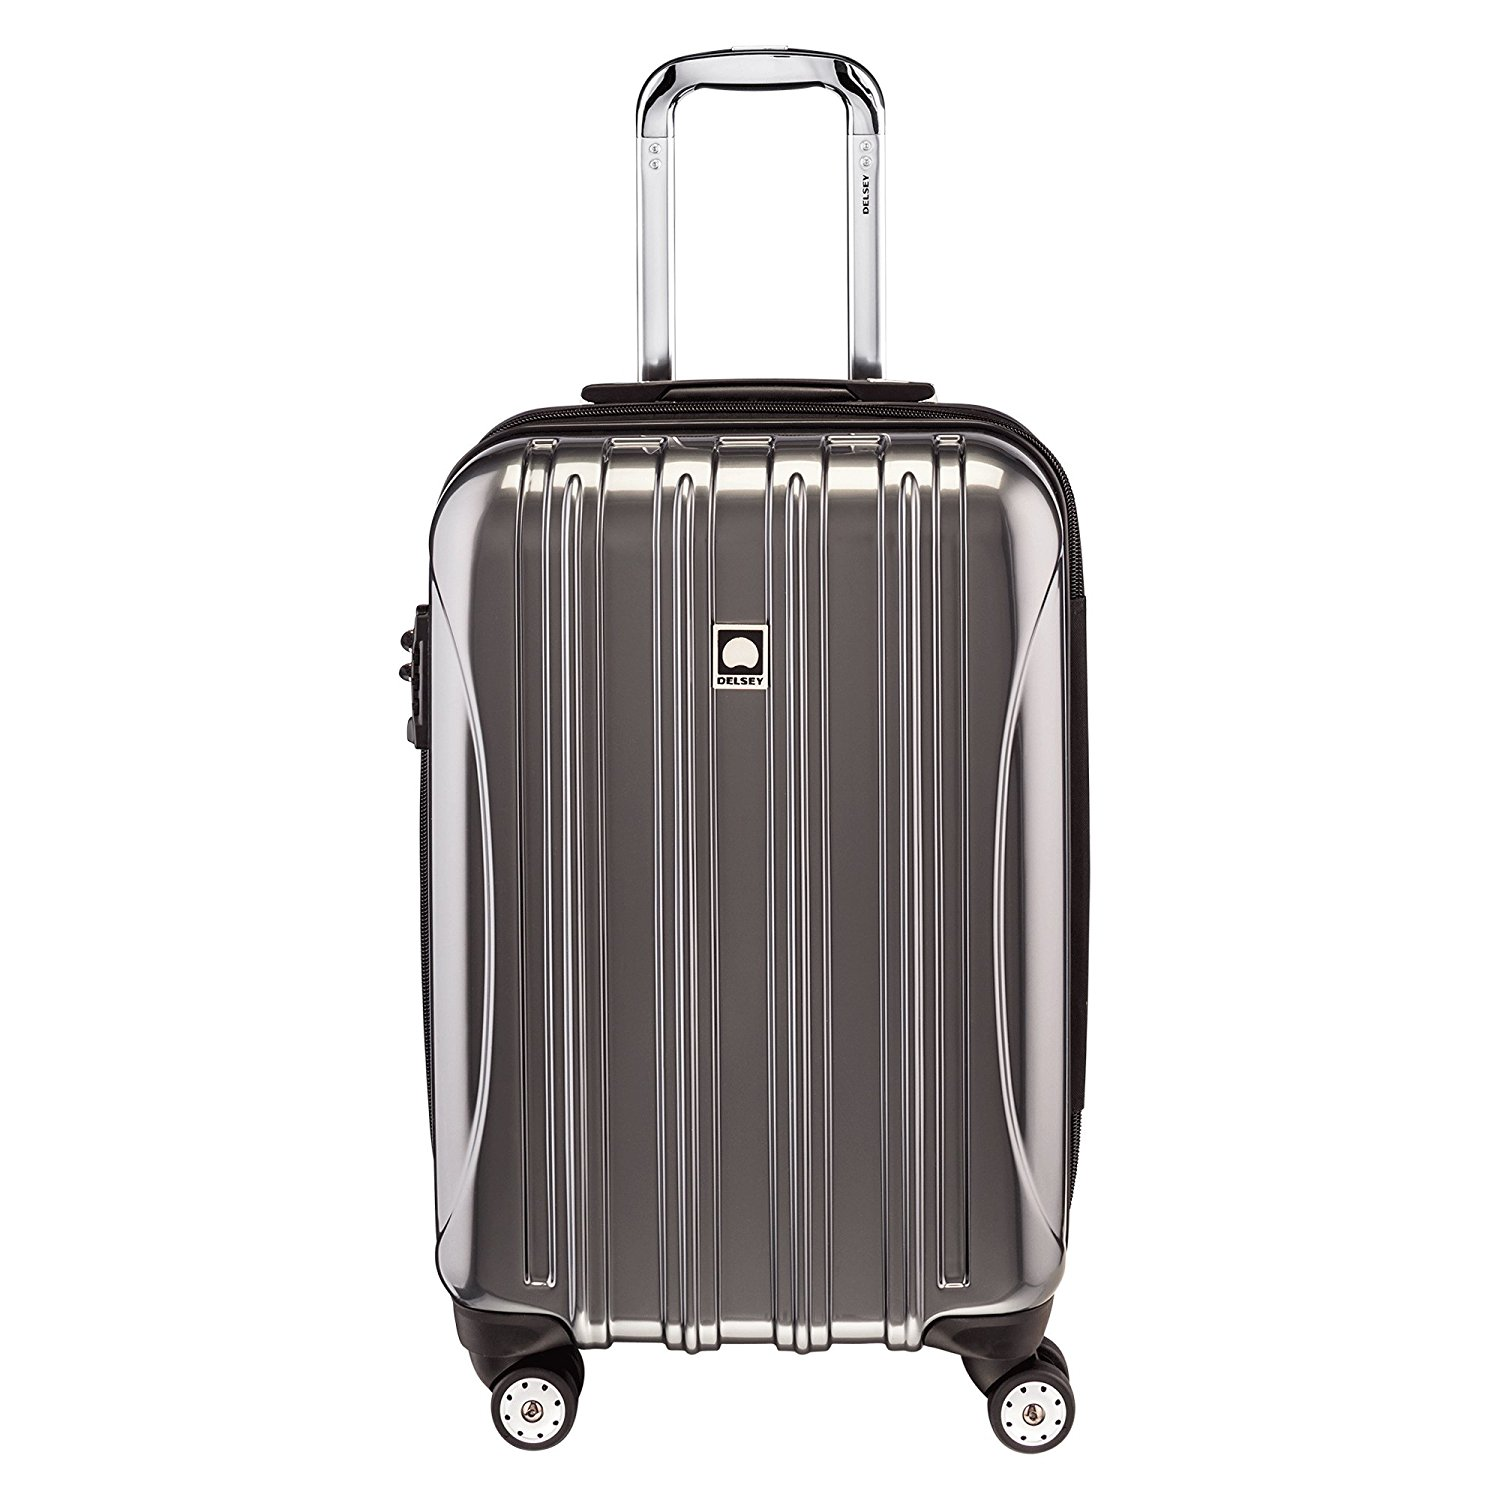 Stylish luggage for the woman on the go!